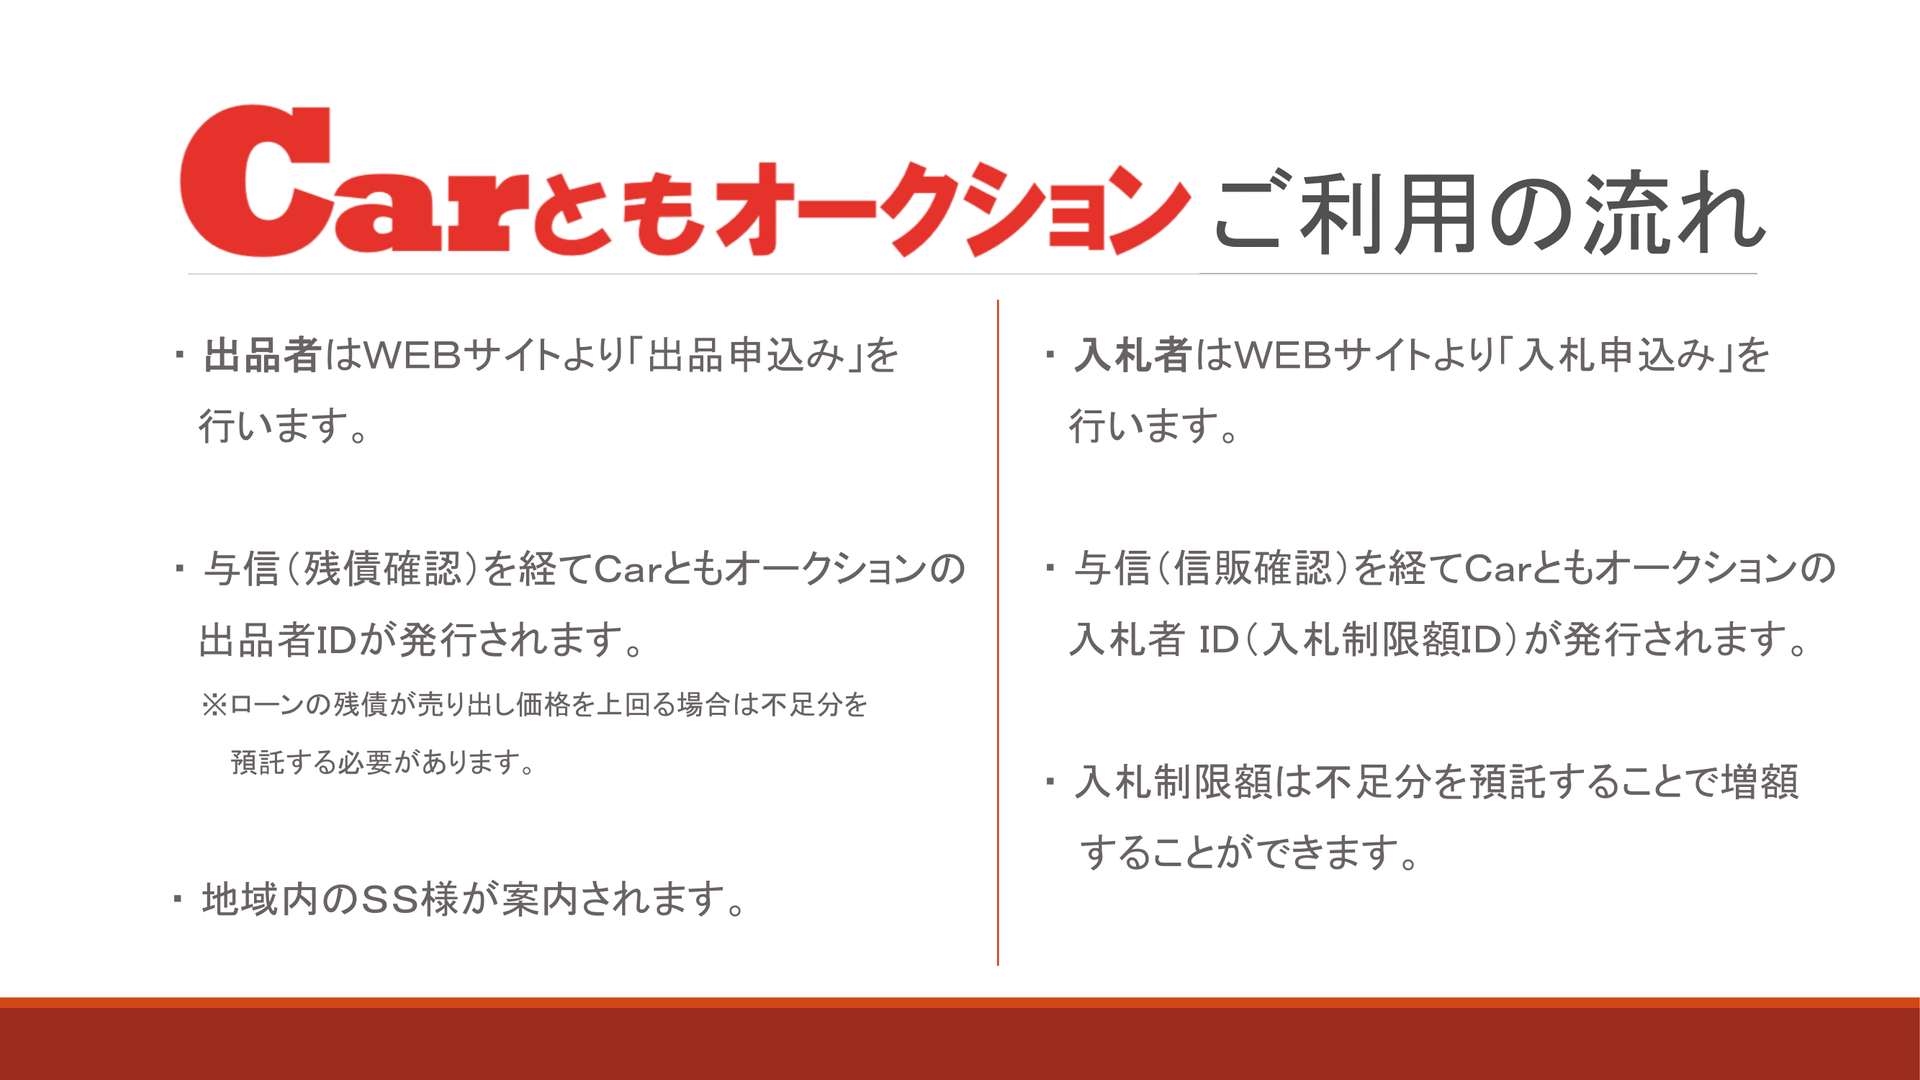 CarともオークションSS様向けご案内資料(PPT)-13.png